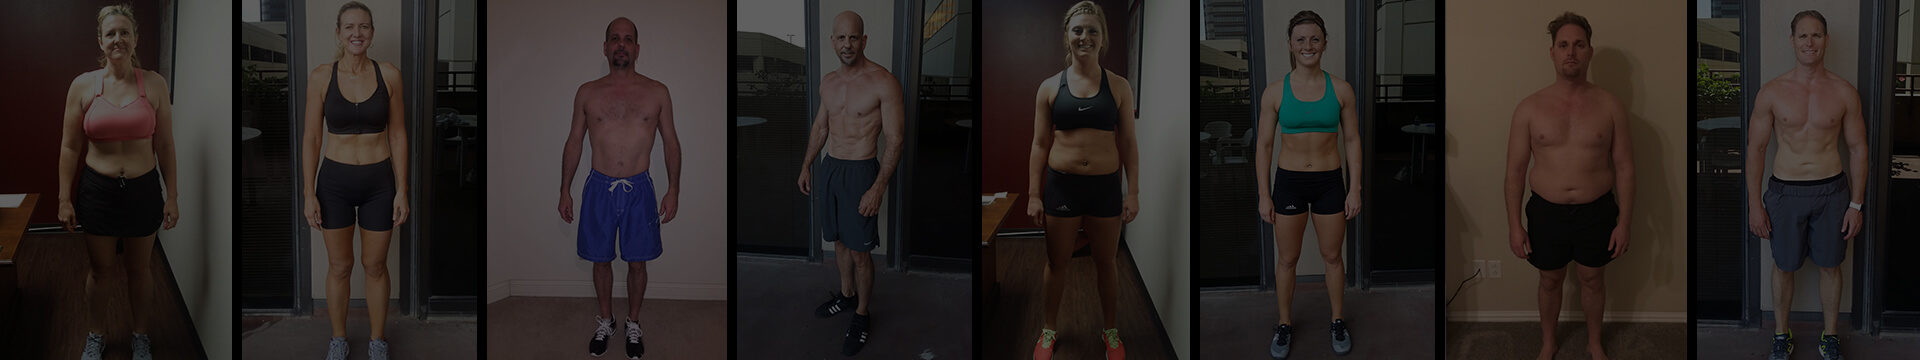 AFS Premier Fitness pricing